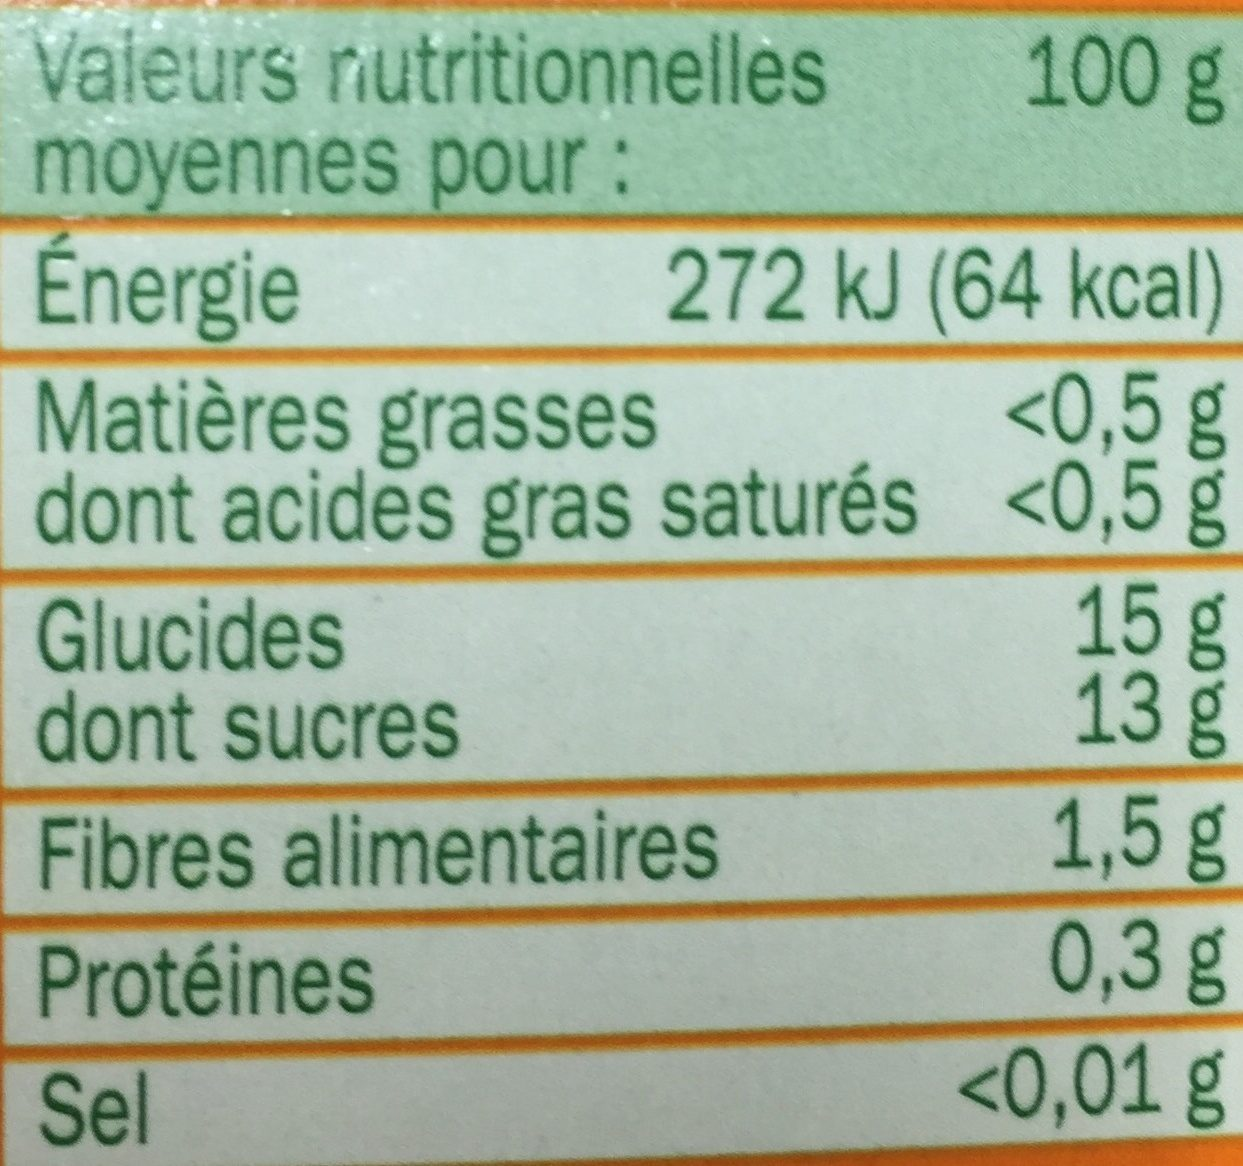 Spécialité fruits pom abricot - Nutrition facts